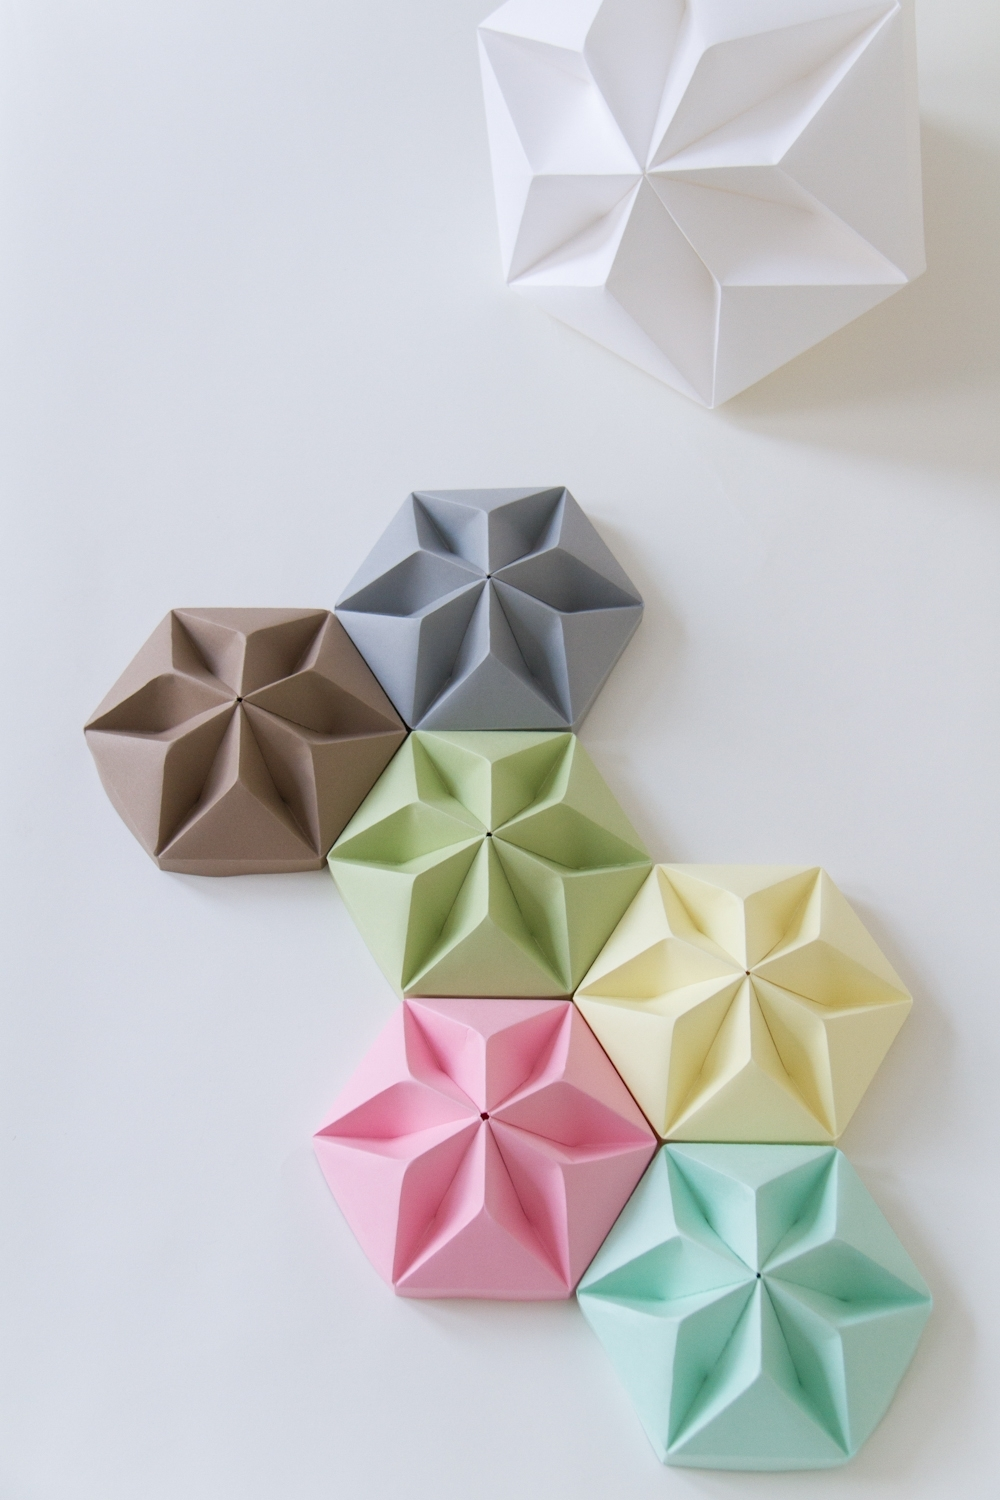 Origami Ideas, Origami And Papercraft With Regard To Diy Origami Wall Art (View 12 of 15)